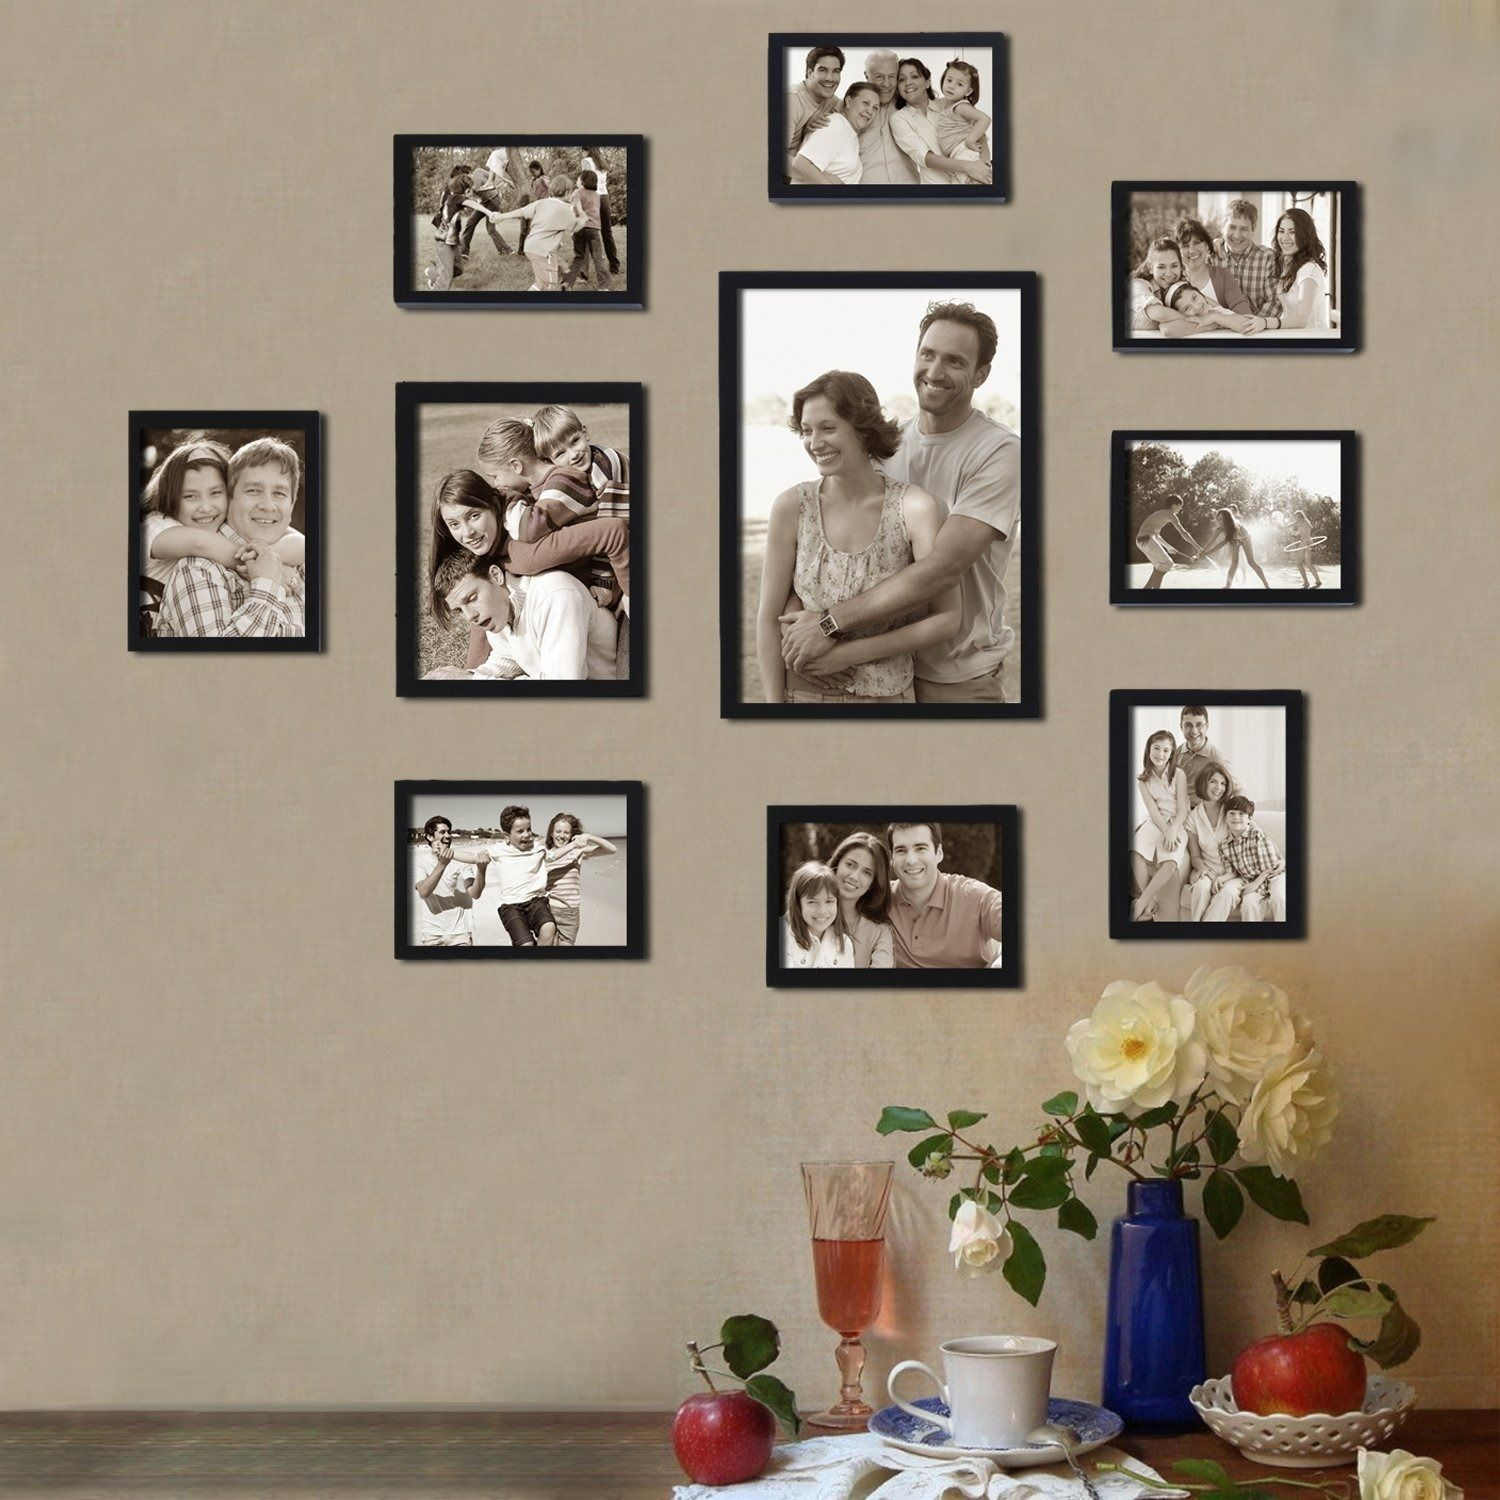 Adeco Decorative Black Wood 10-piece Photo Frame Set for 8 - 4 x 6 ...